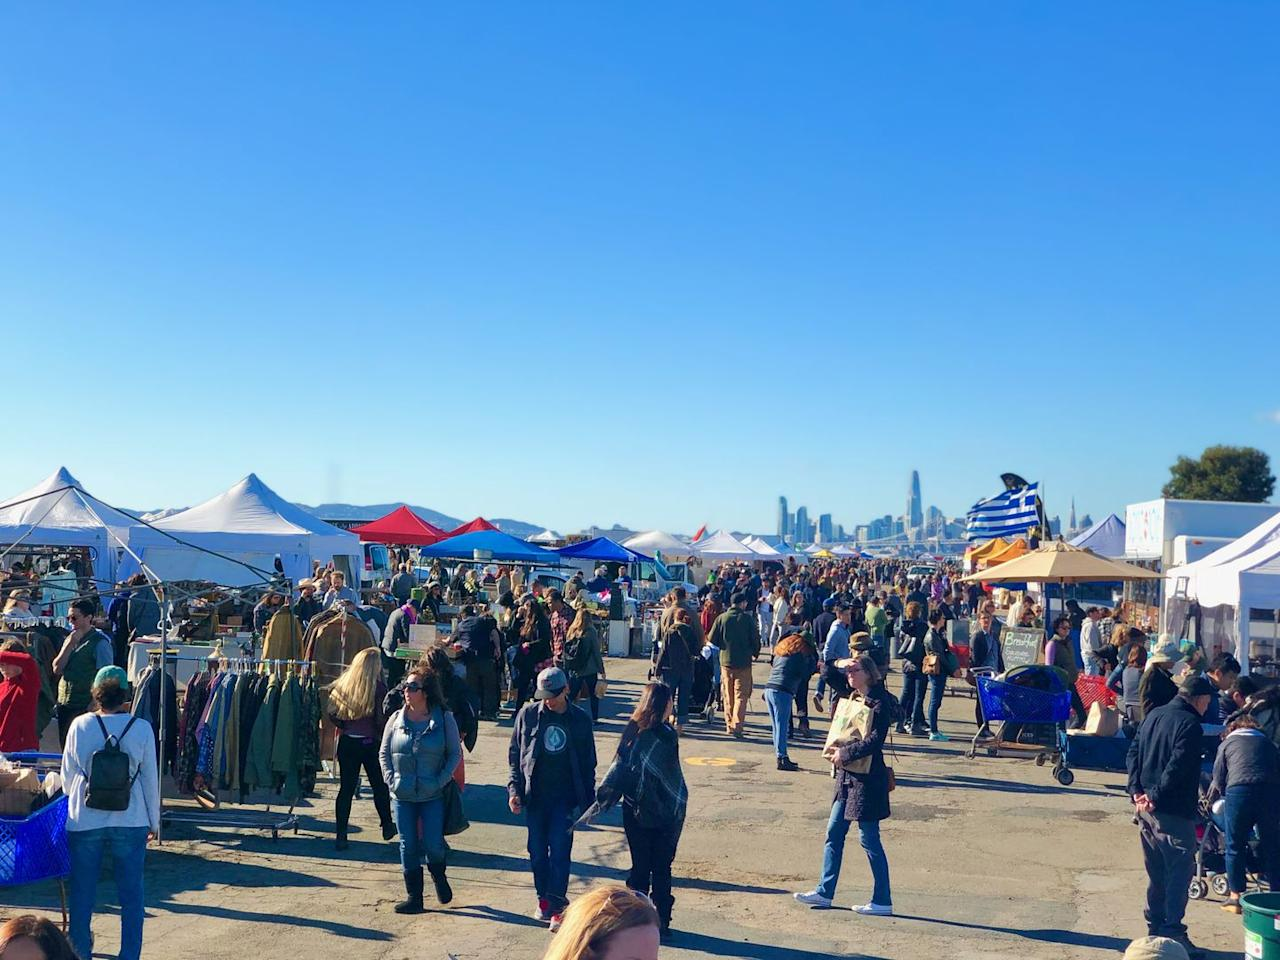 """<p>Visiting the Bay Area? Head over to the <a href=""""https://alamedapointantiquesfaire.com/"""" target=""""_blank"""">Alameda Point Antiques Faire.</a> Every Sunday, over 800 vendors set up their booths on a former jet runway, which offers an impressive view of the San Francisco skyline. As the largest outdoor market in Northern California, the Alameda Point Antiques Faire sells everything from ceramics and glassware, to holiday decor, to lighting. If you want to fill your closet with some vintage wares, check out the community's biannual Alameda Vintage Fashion Faire, which sells clothes from each decade.</p>"""